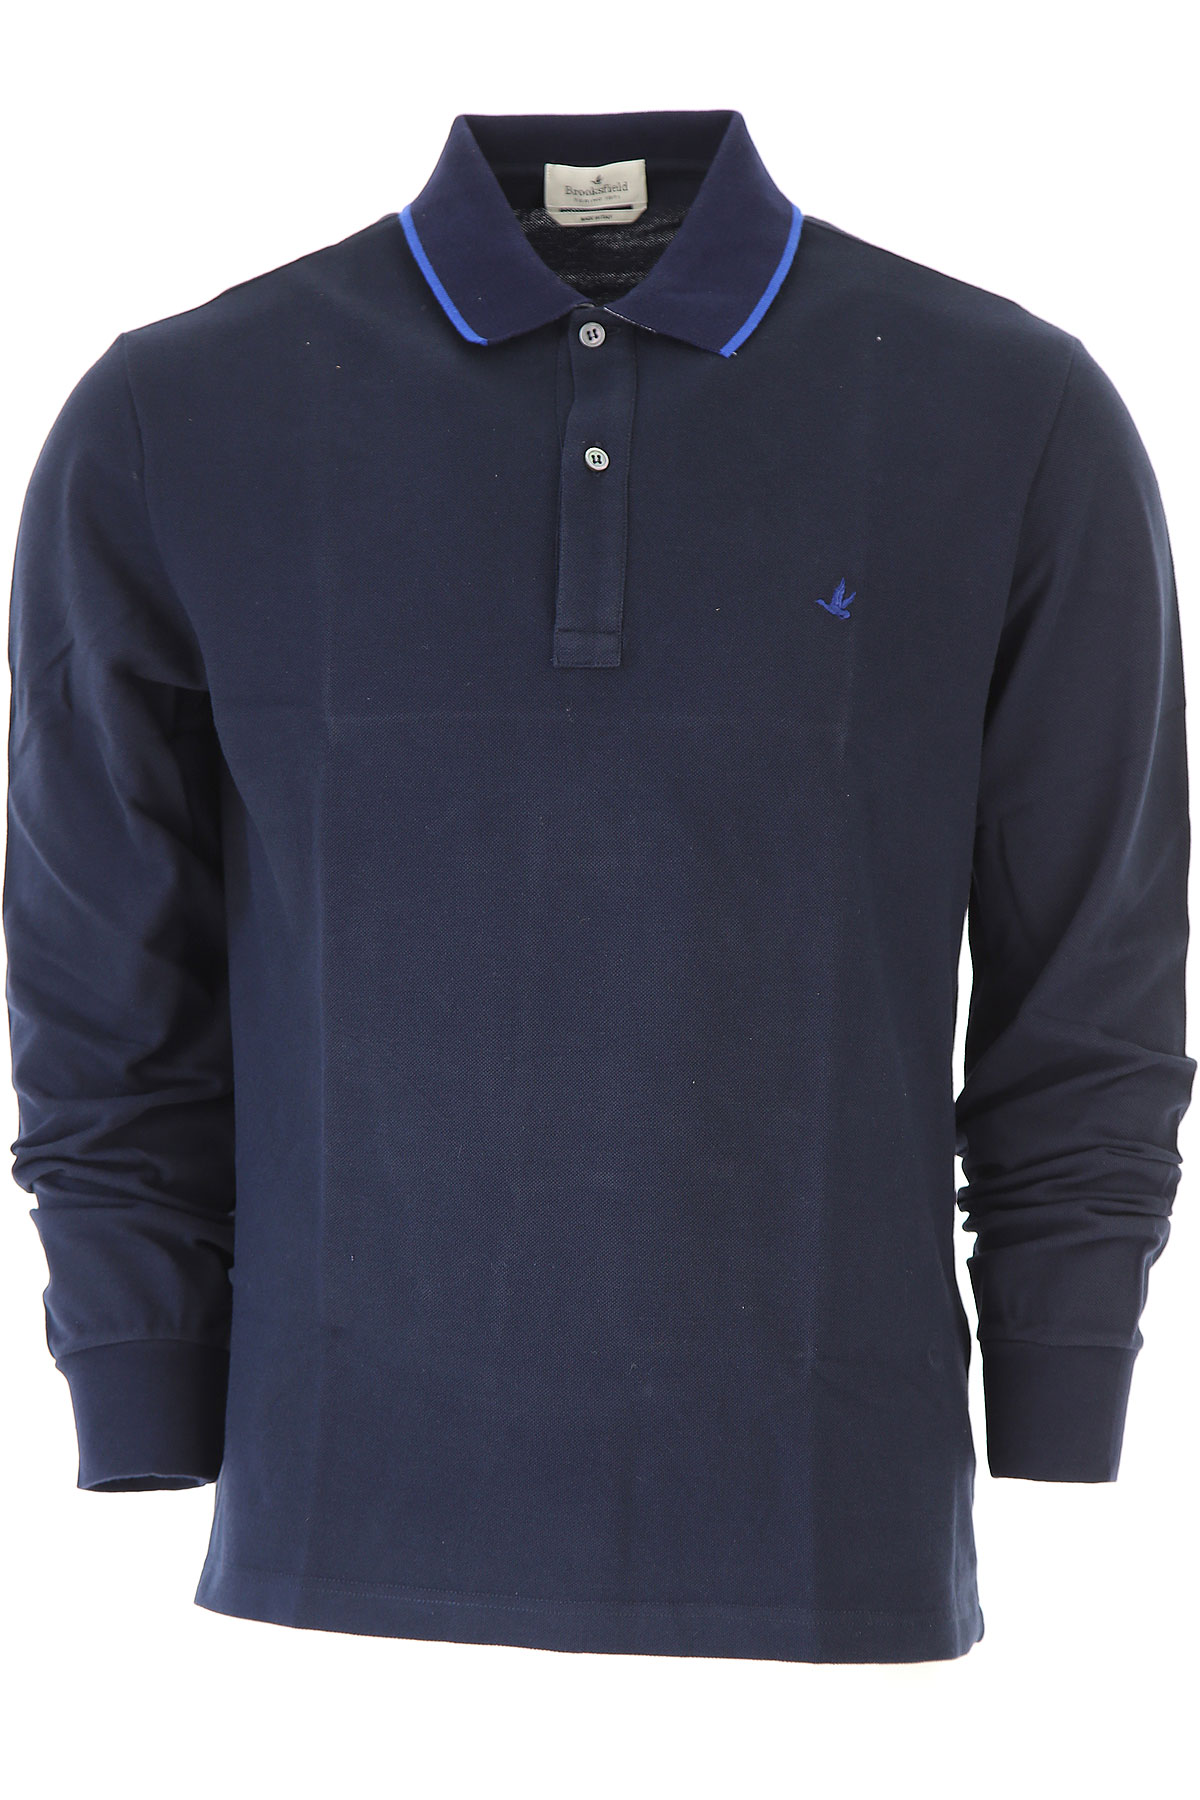 Image of Brooksfield Polo Shirt for Men, Blue Ink, Cotton, 2017, L M